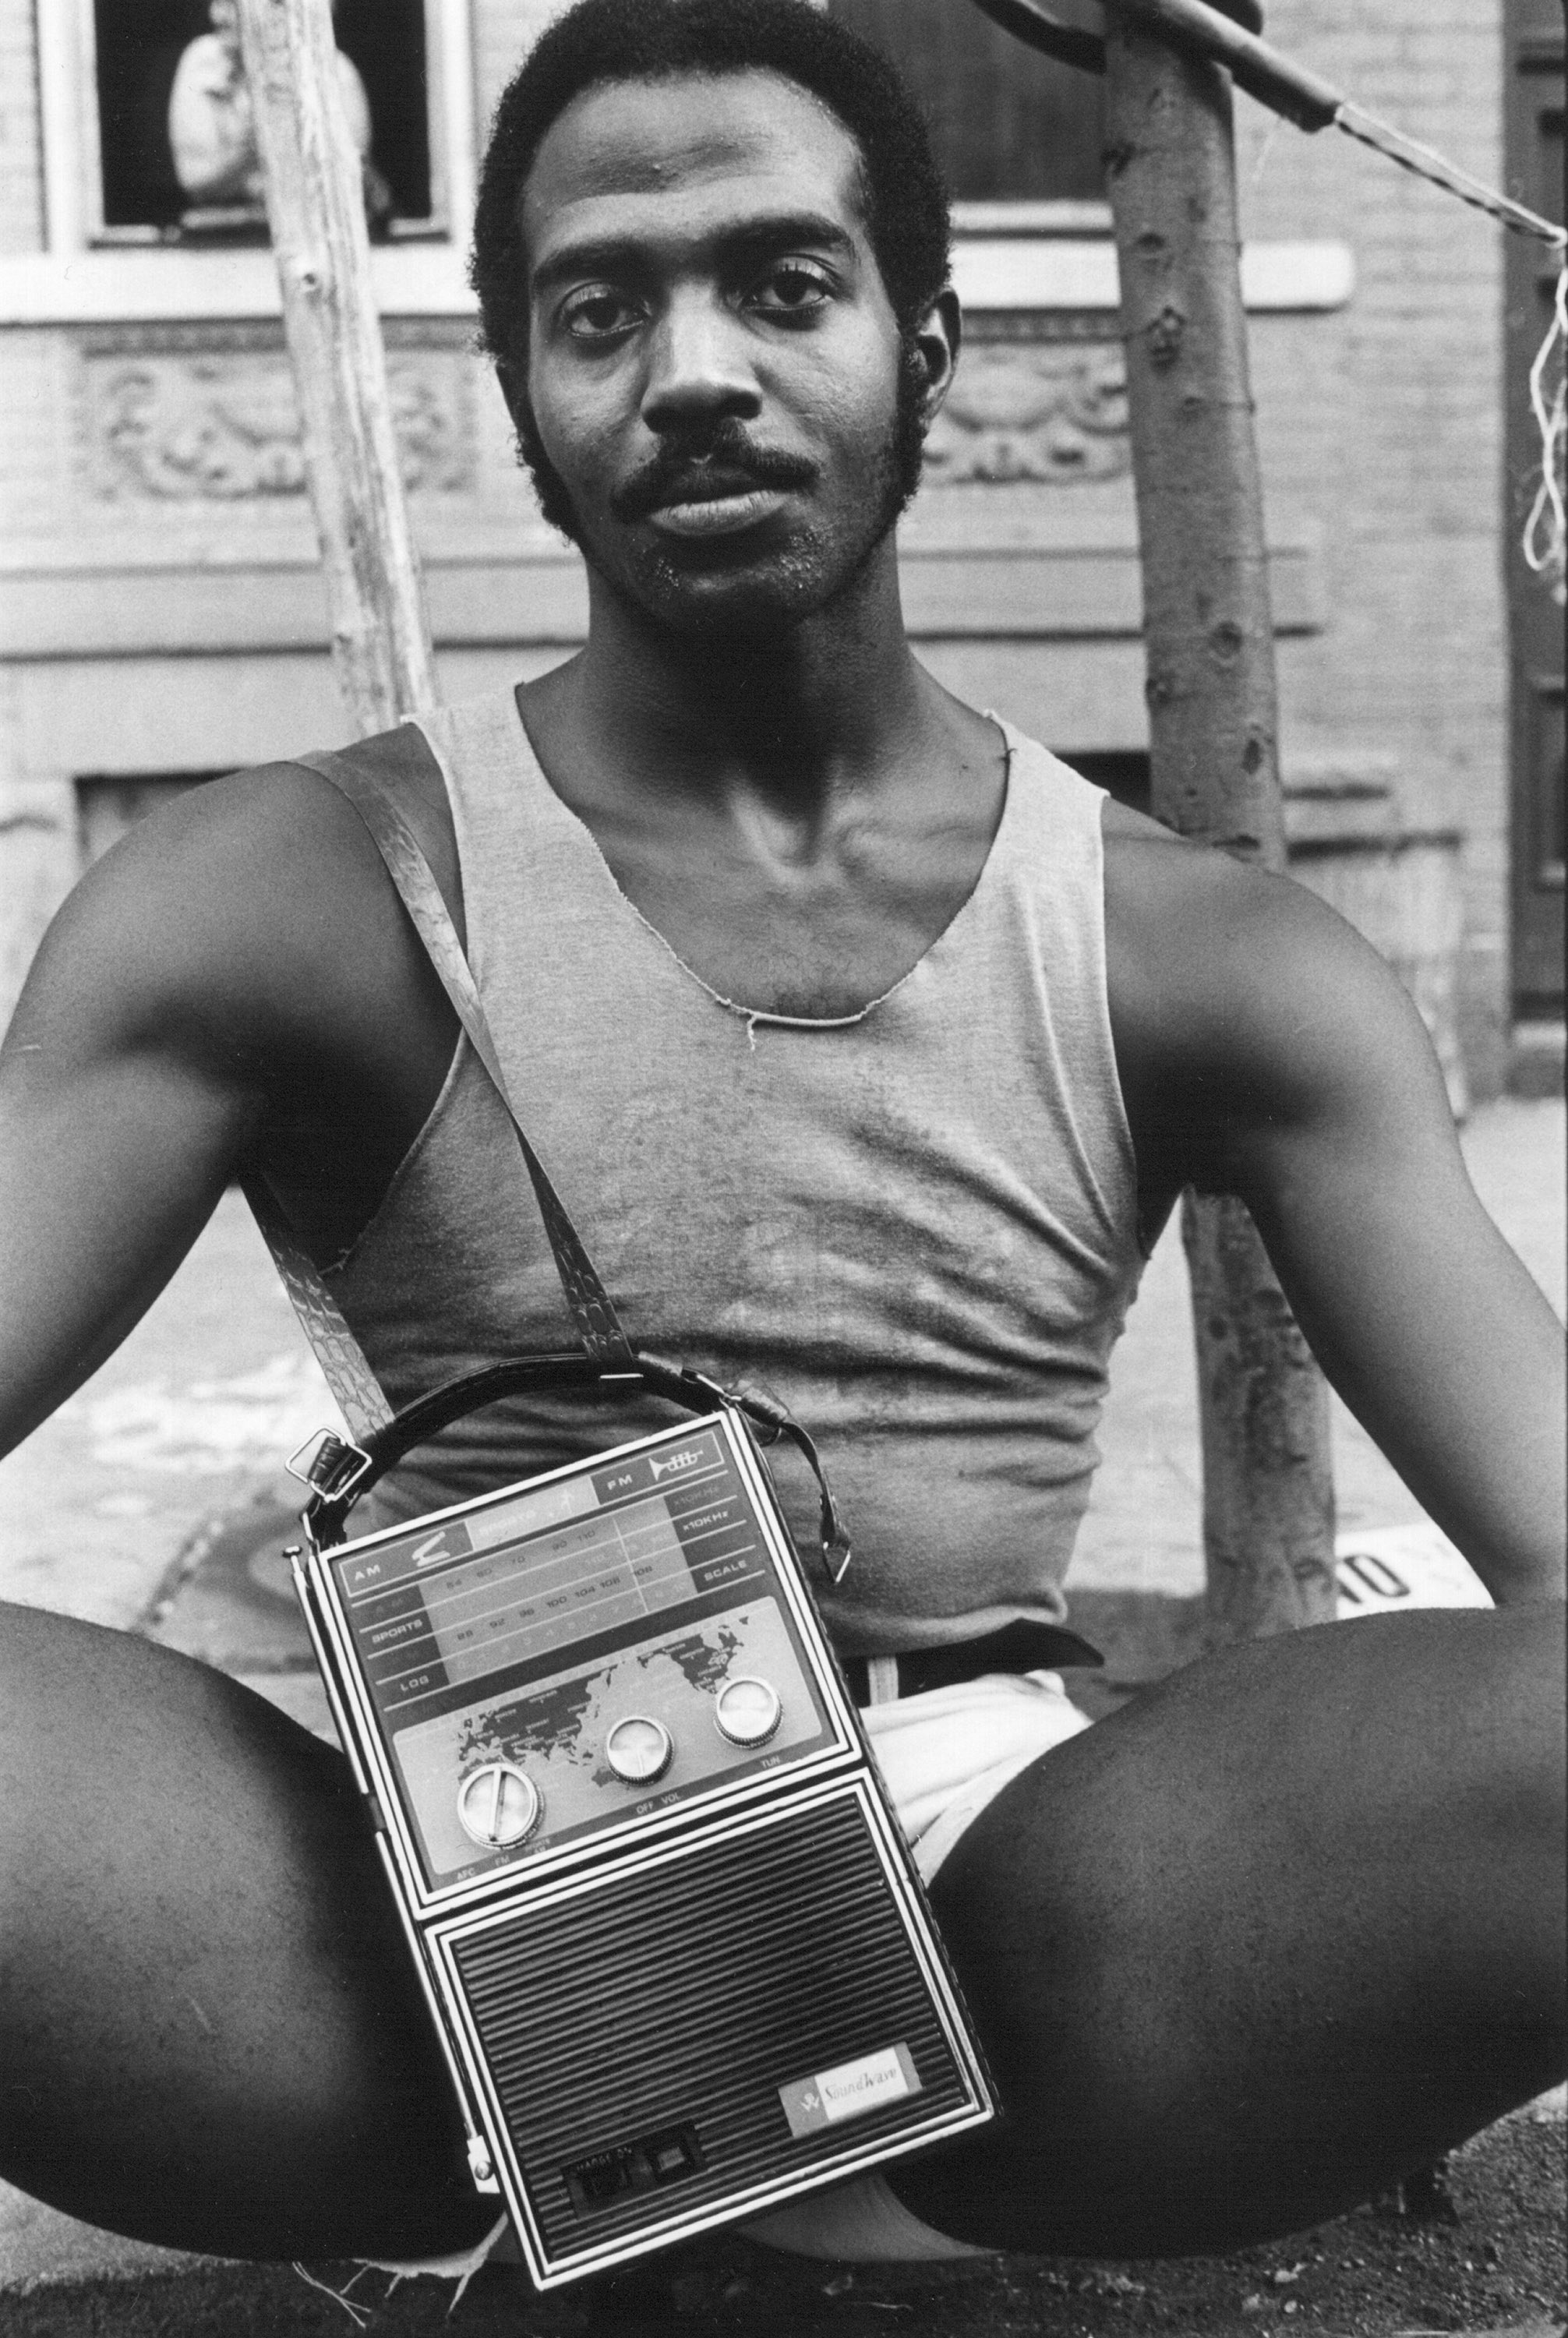 Guy With Radio, East 7th Street, 1977